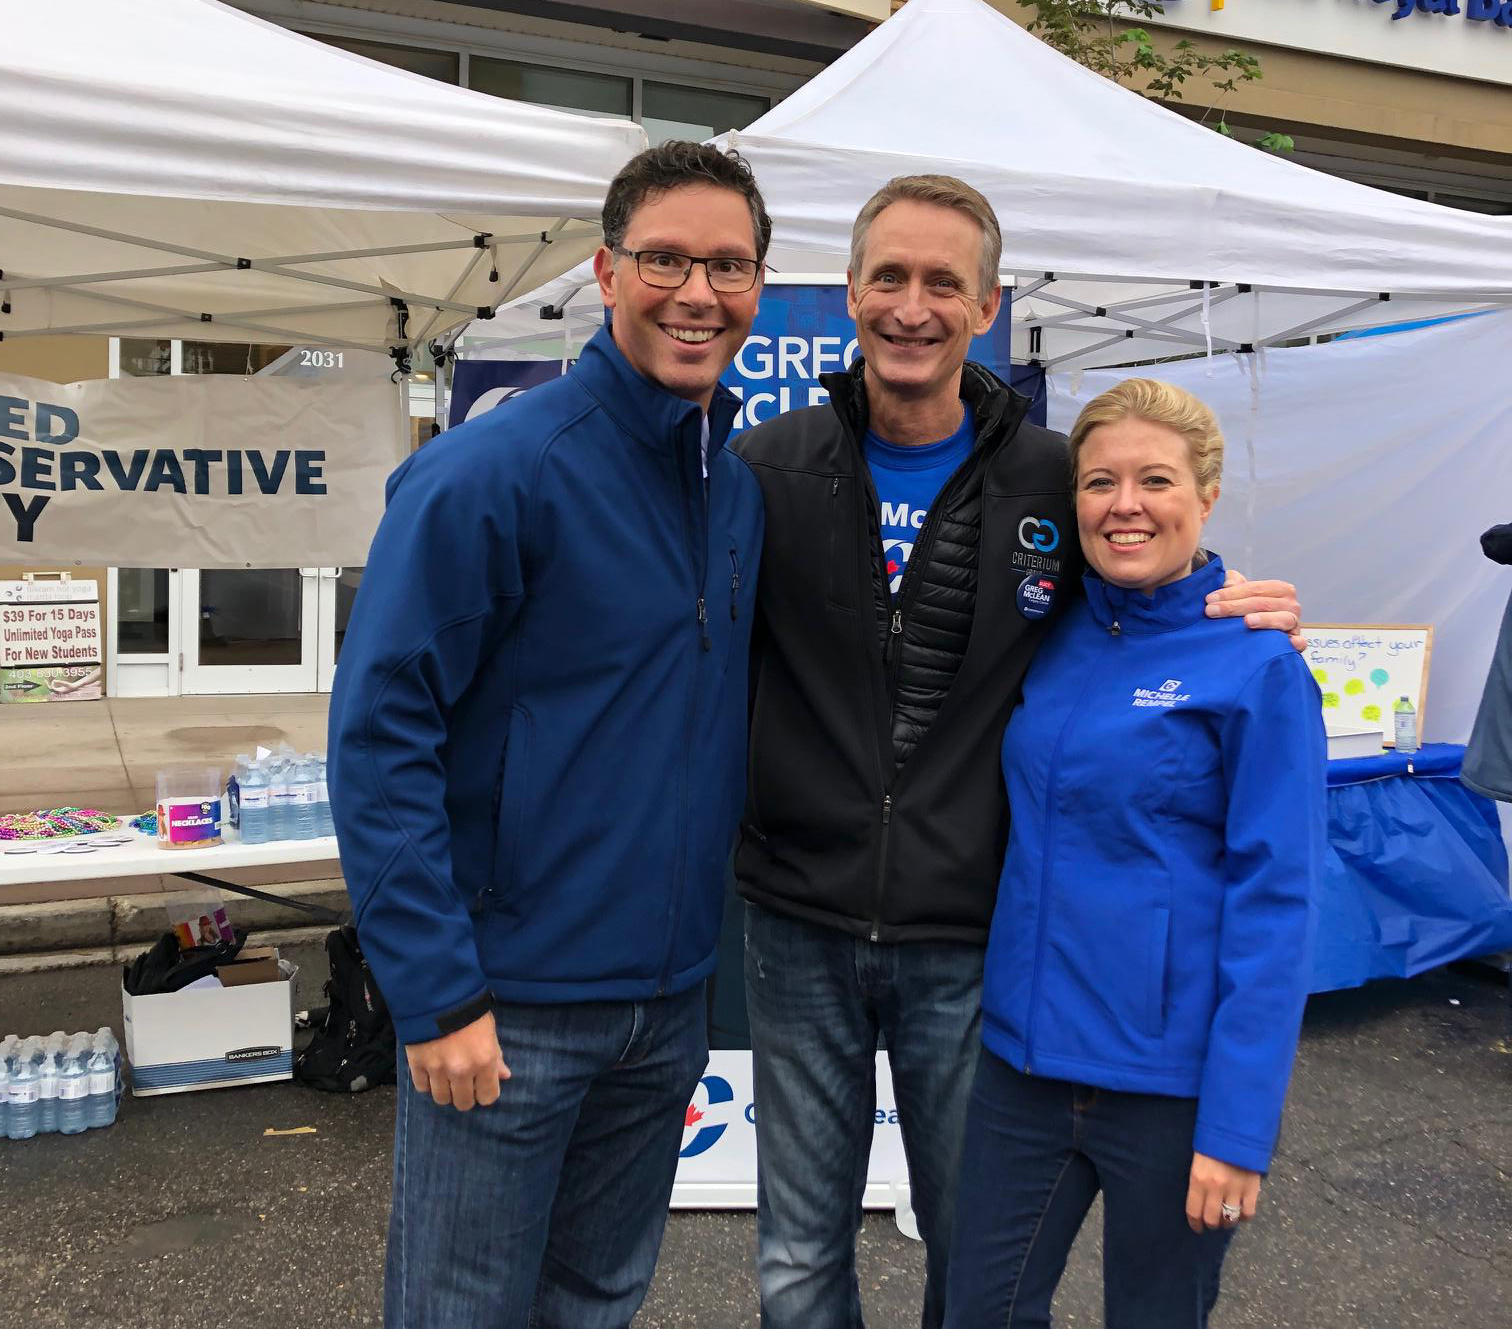 Pictured with Calgary Elbow MLA Doug Schweitzer and Calgary Nose Hill MP Michelle Rempel Garner.